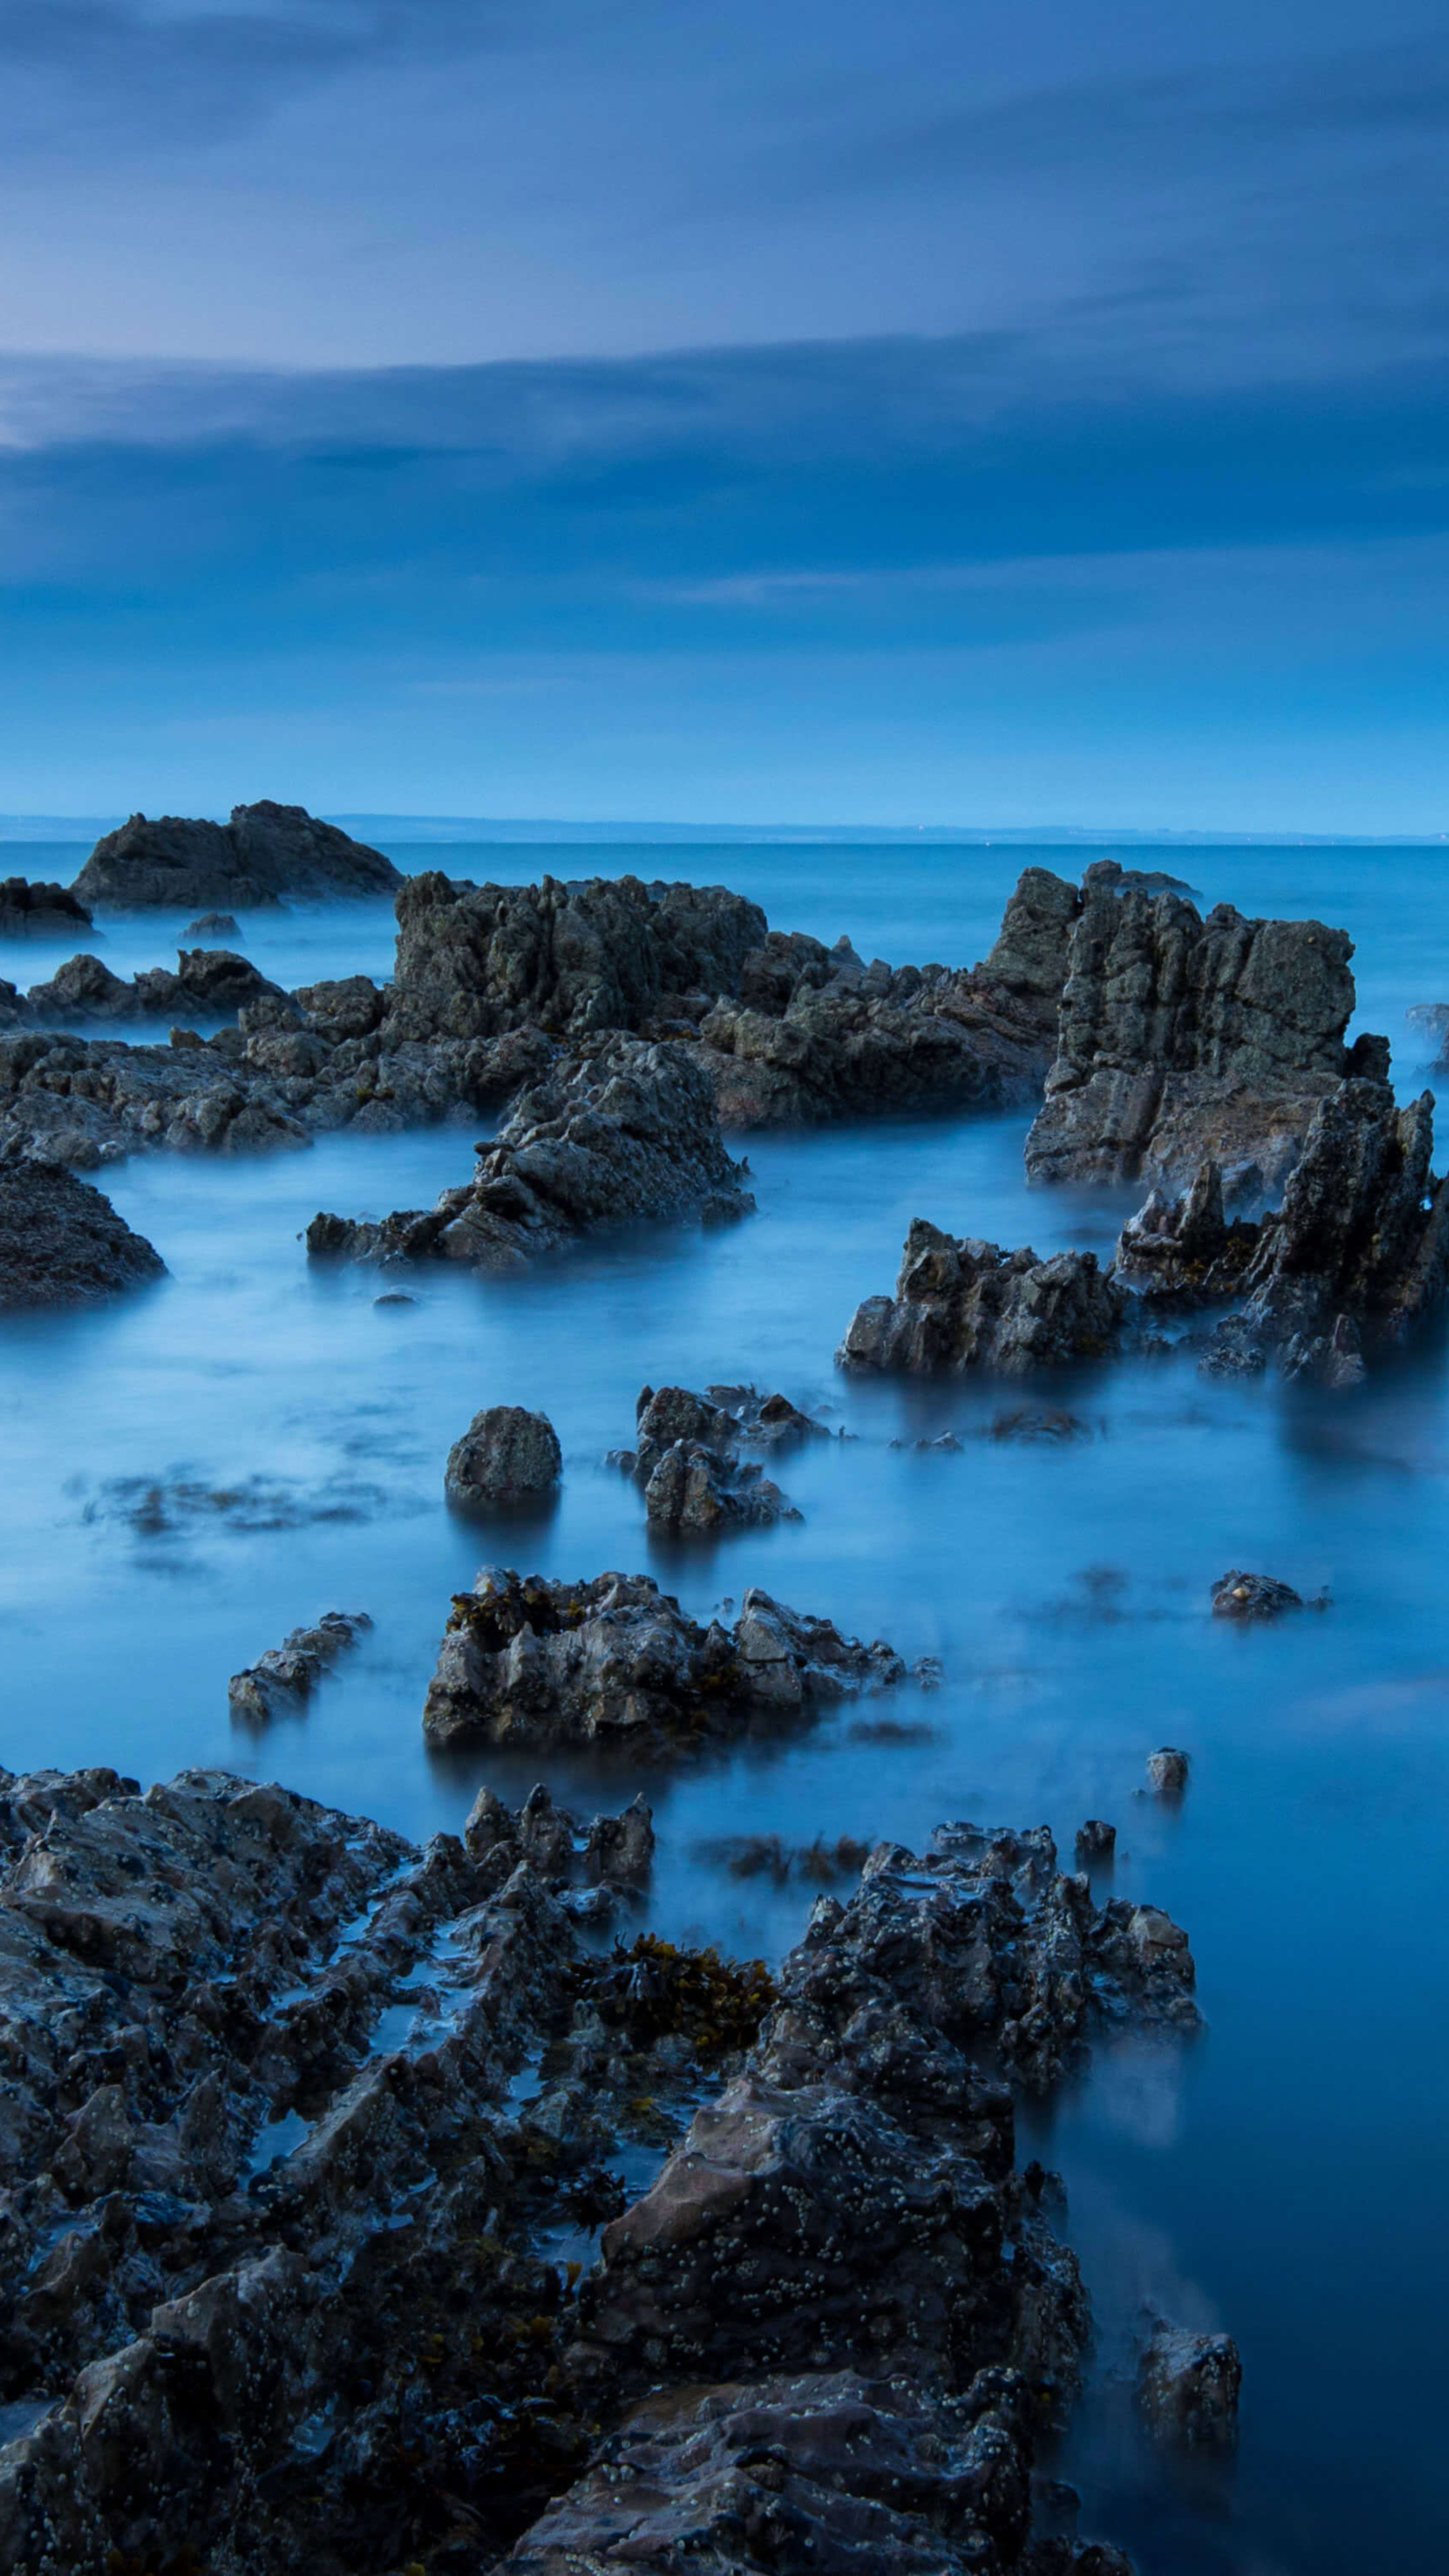 sea-rocks-evening-view-5k-nx.jpg